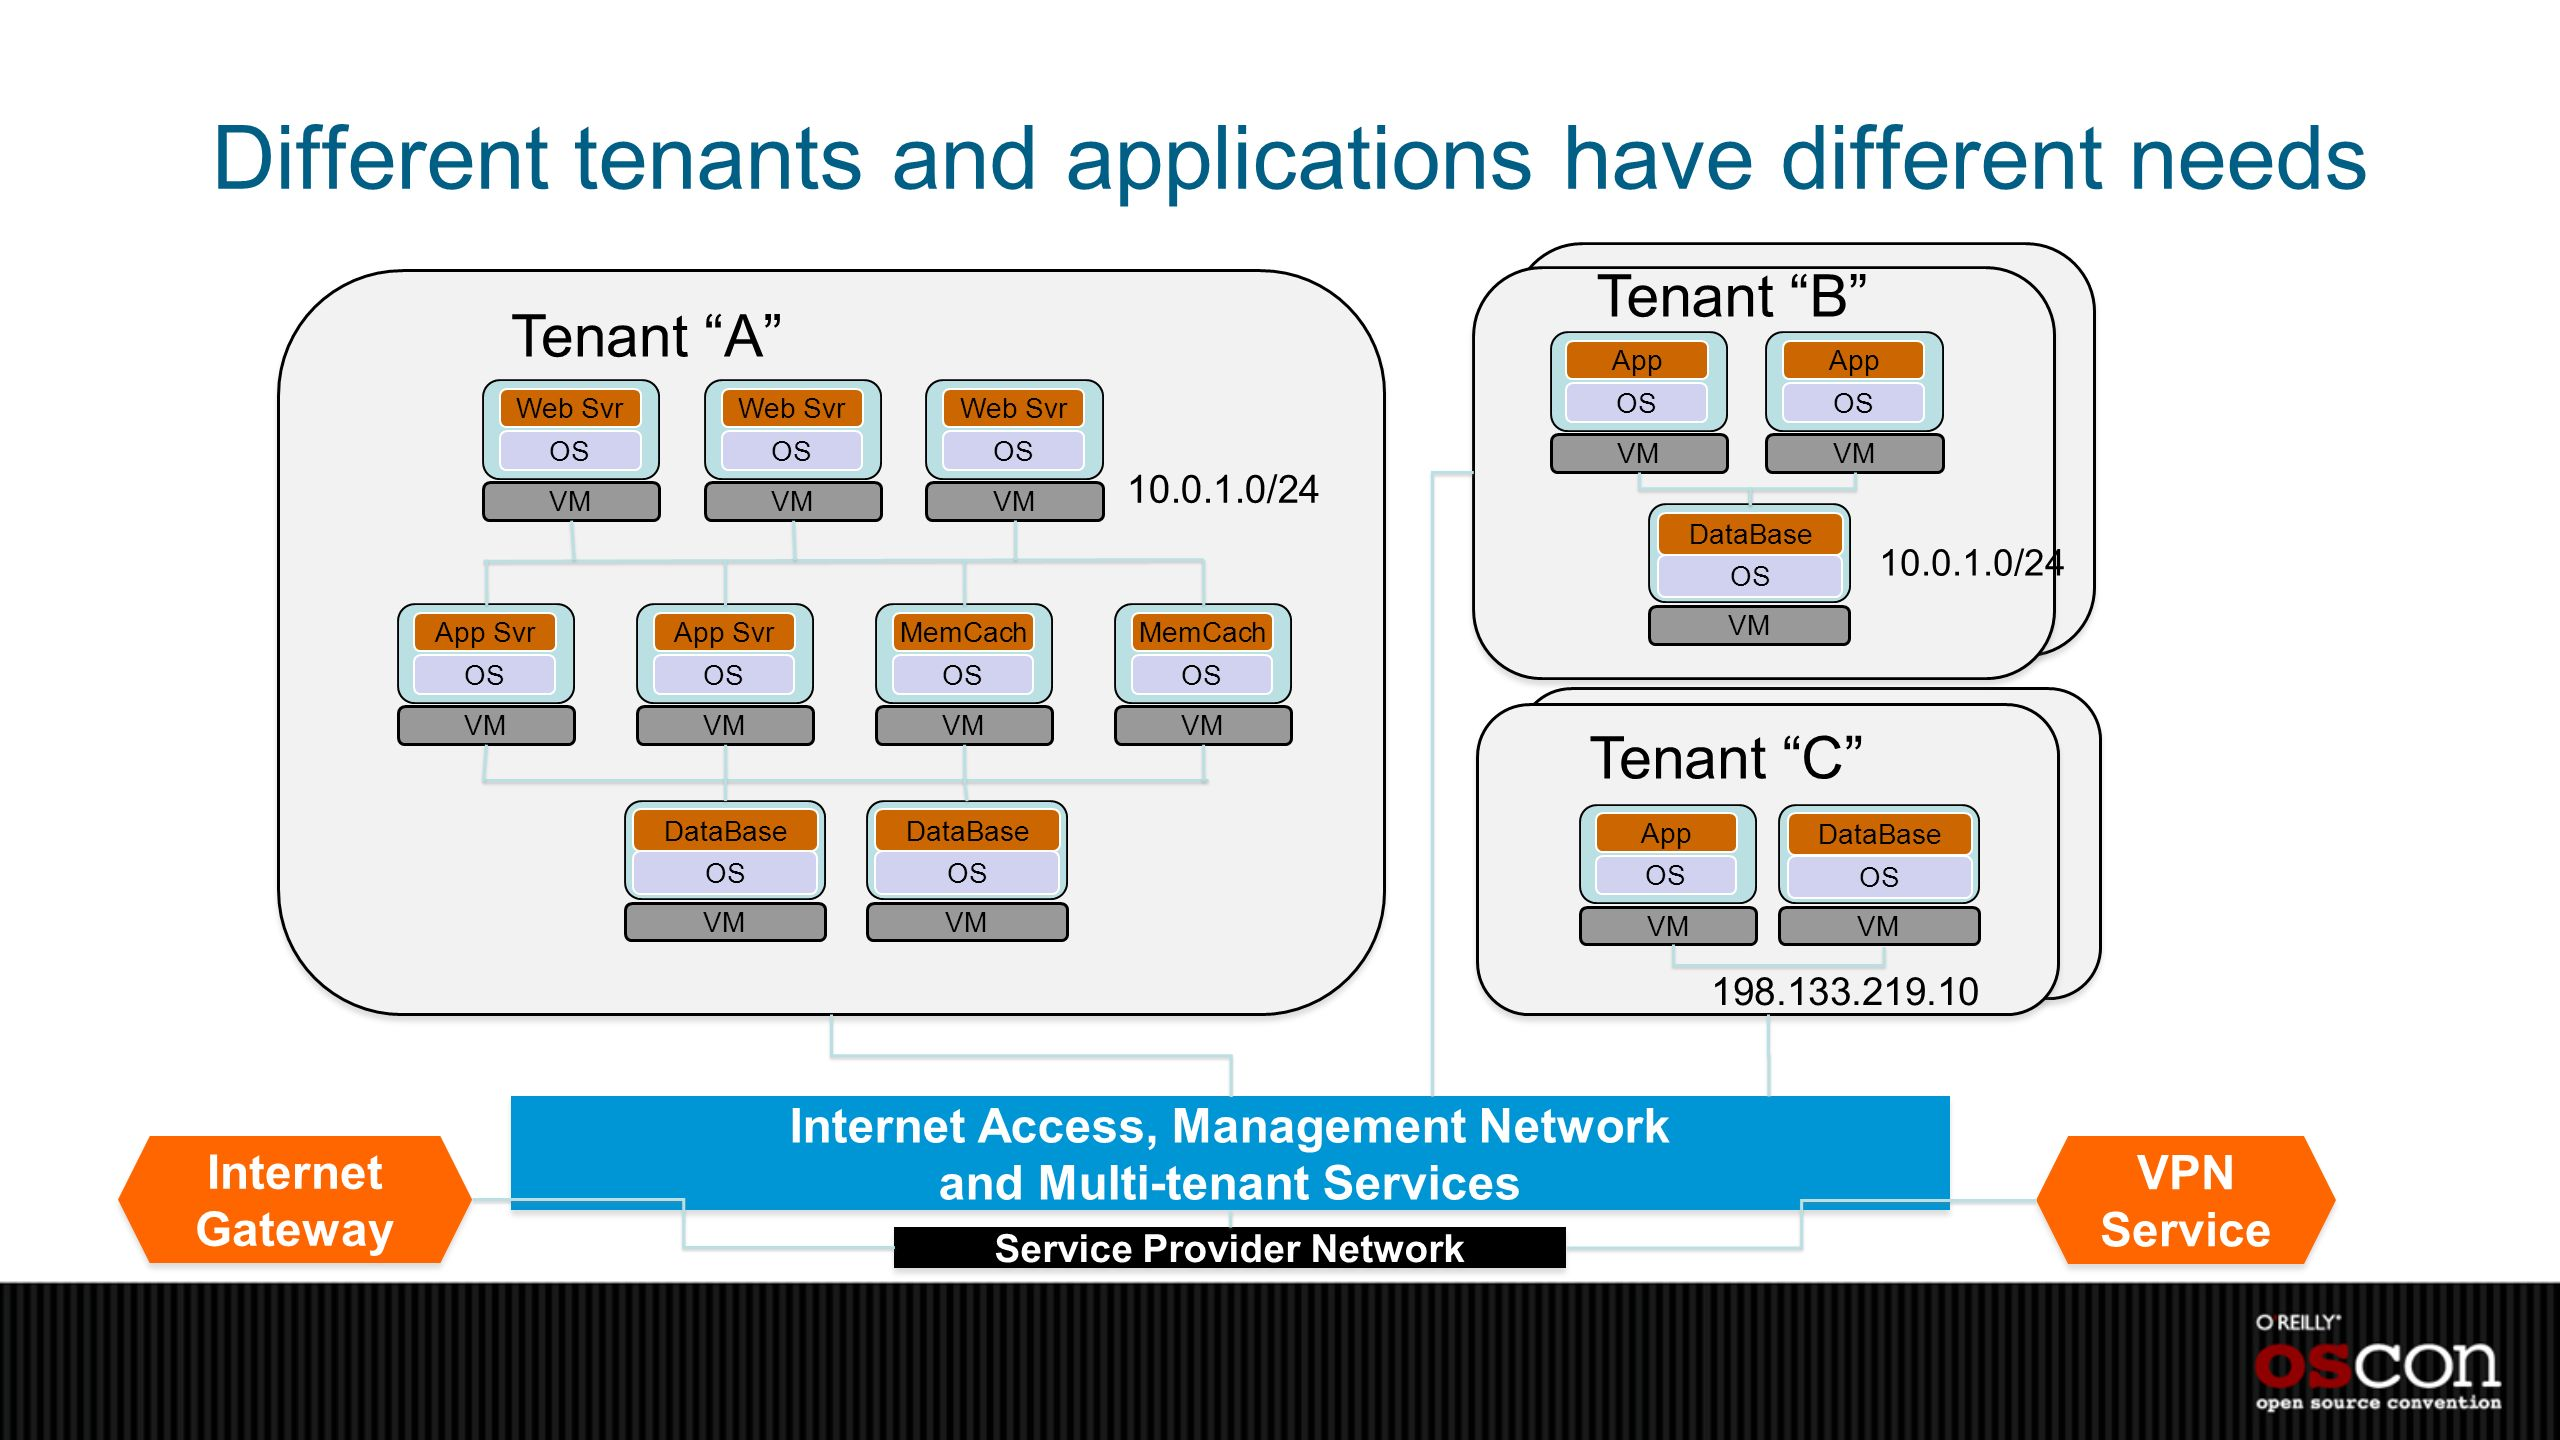 Different tenants and applications have different needs